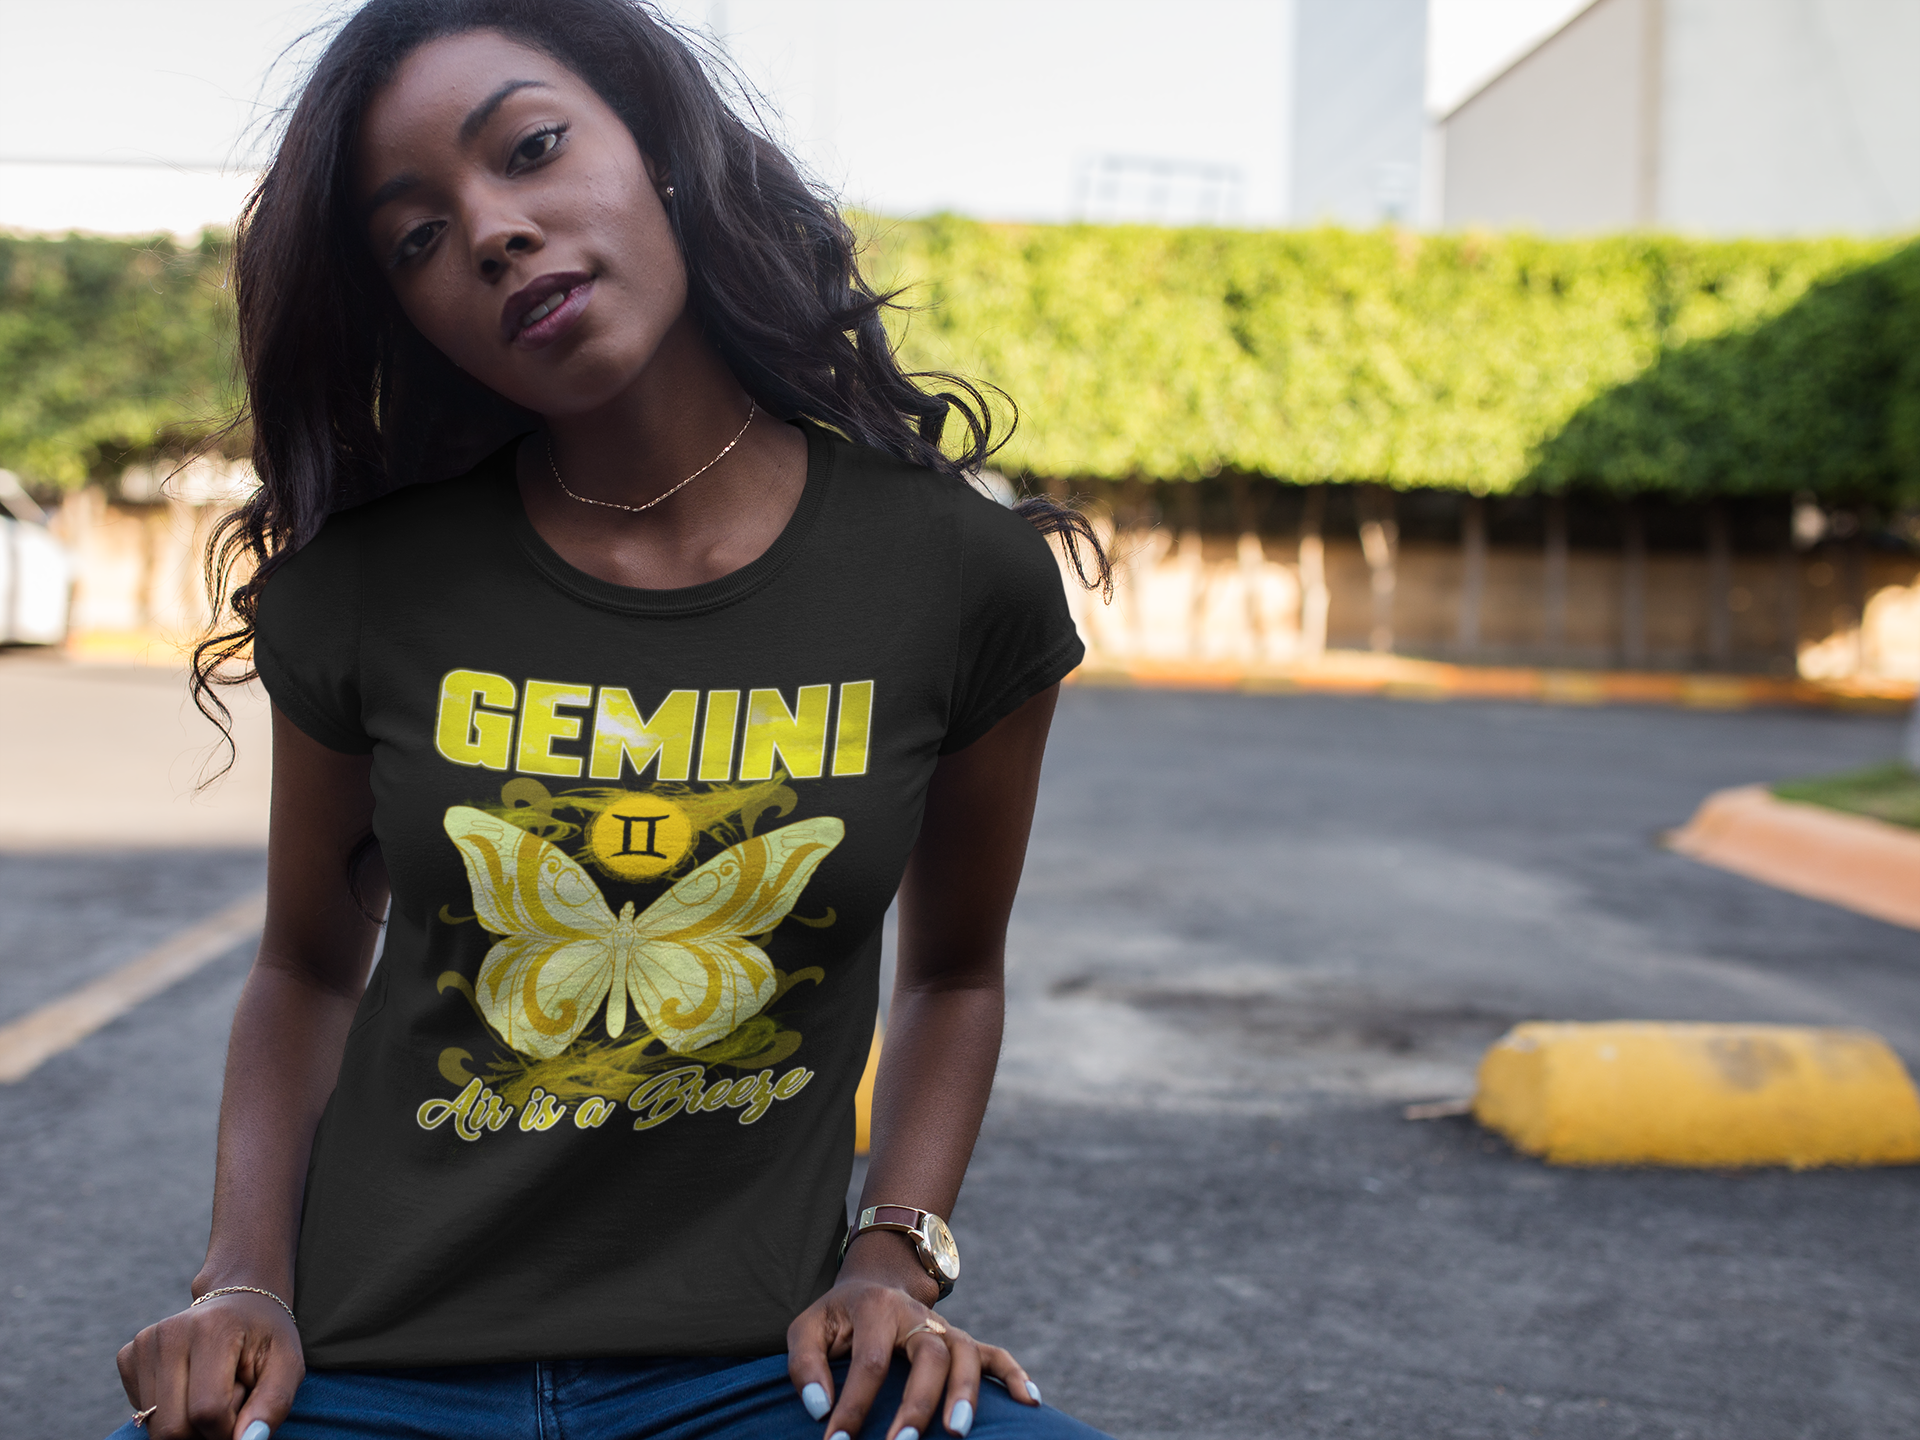 Gemini Air is a Breeze (with Butterfly) T-shirt